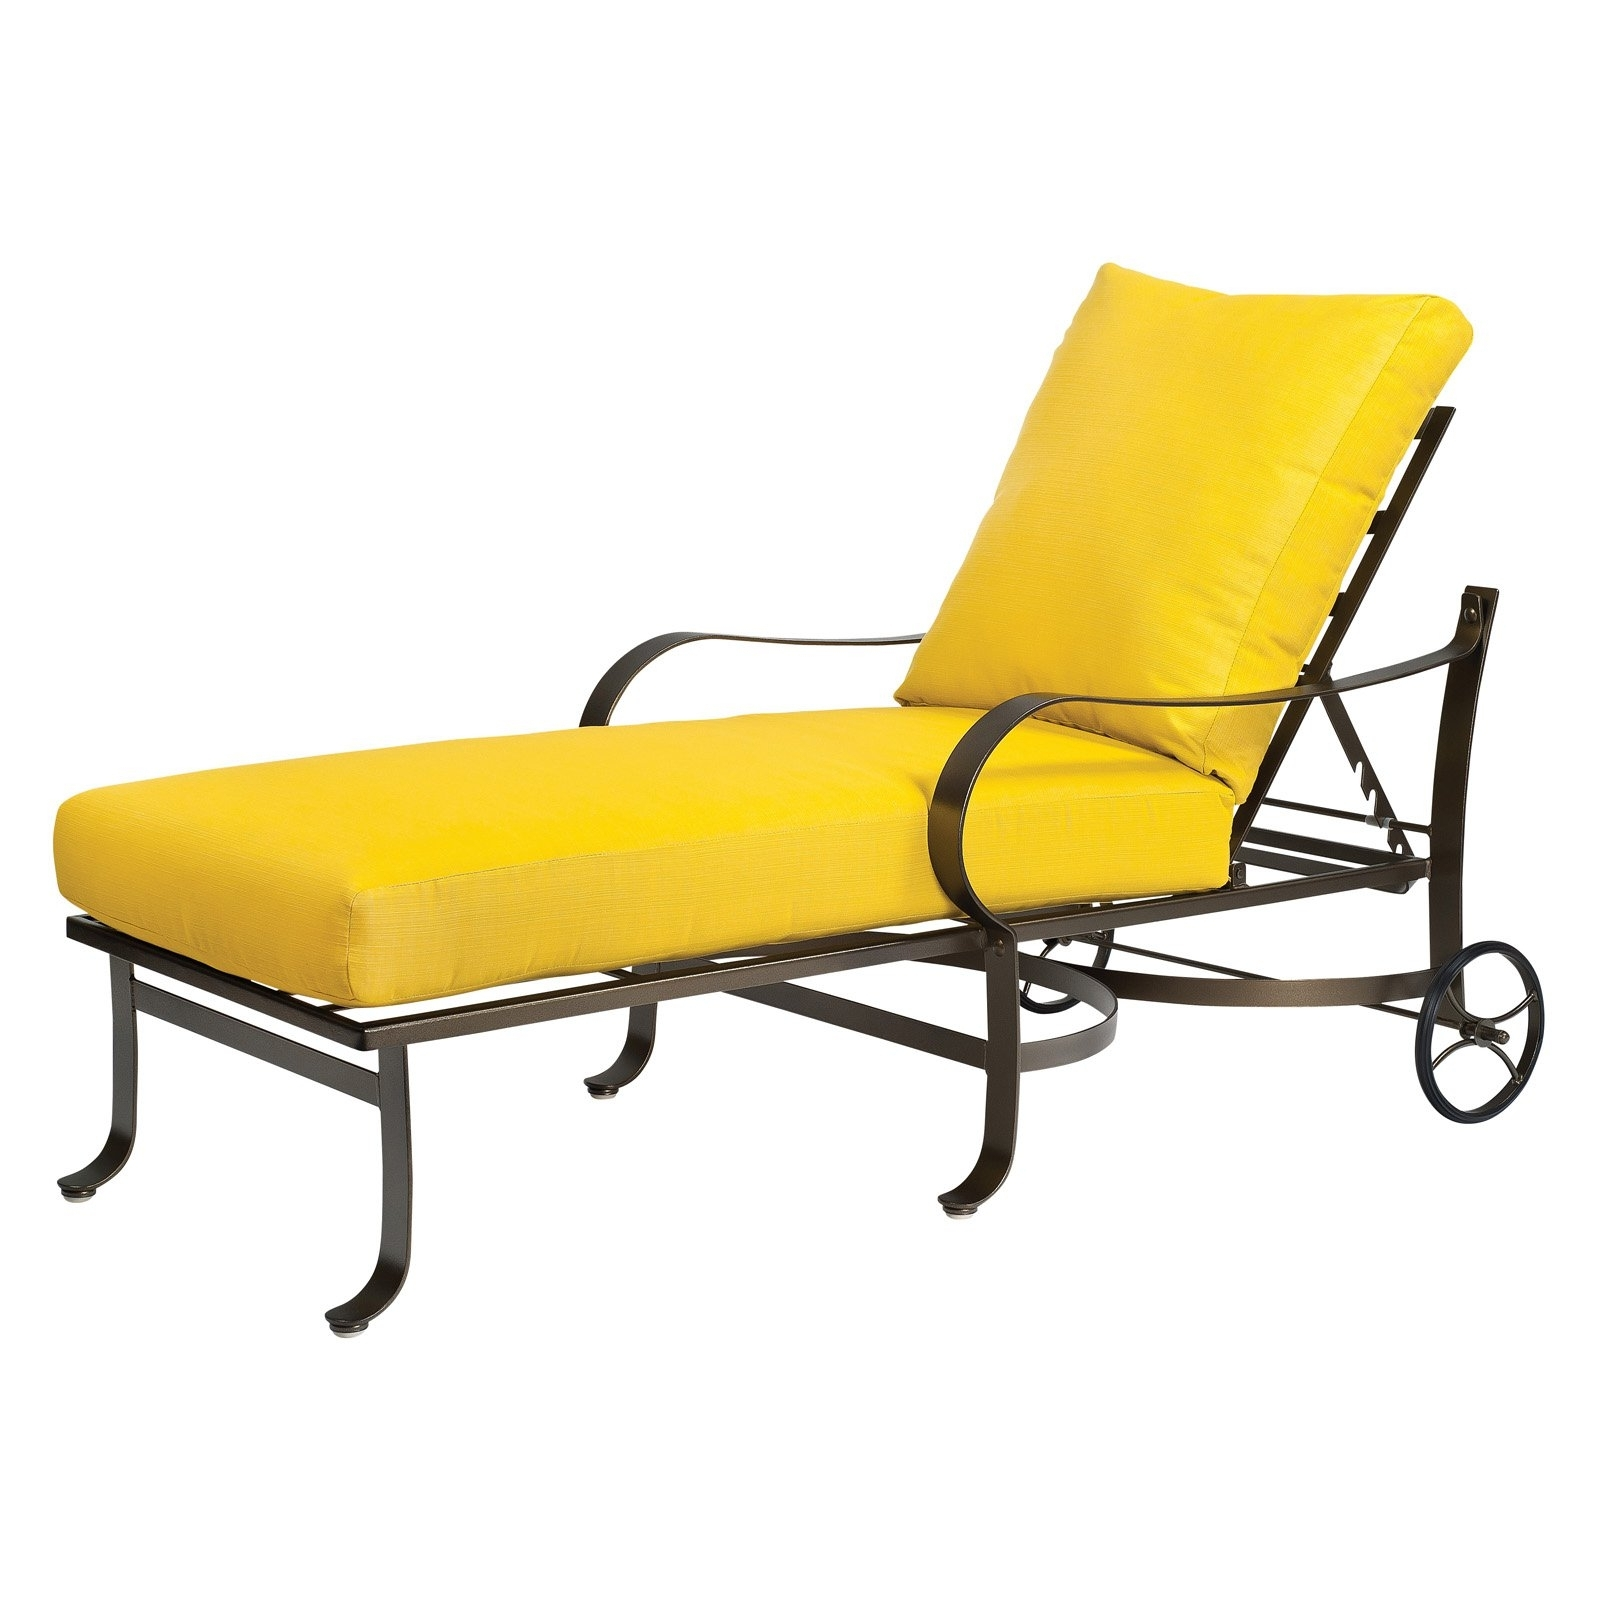 Patio Chaise Lounge Cushions Throughout Favorite Yellow Lounge Chair Cushions • Lounge Chairs Ideas (View 7 of 15)